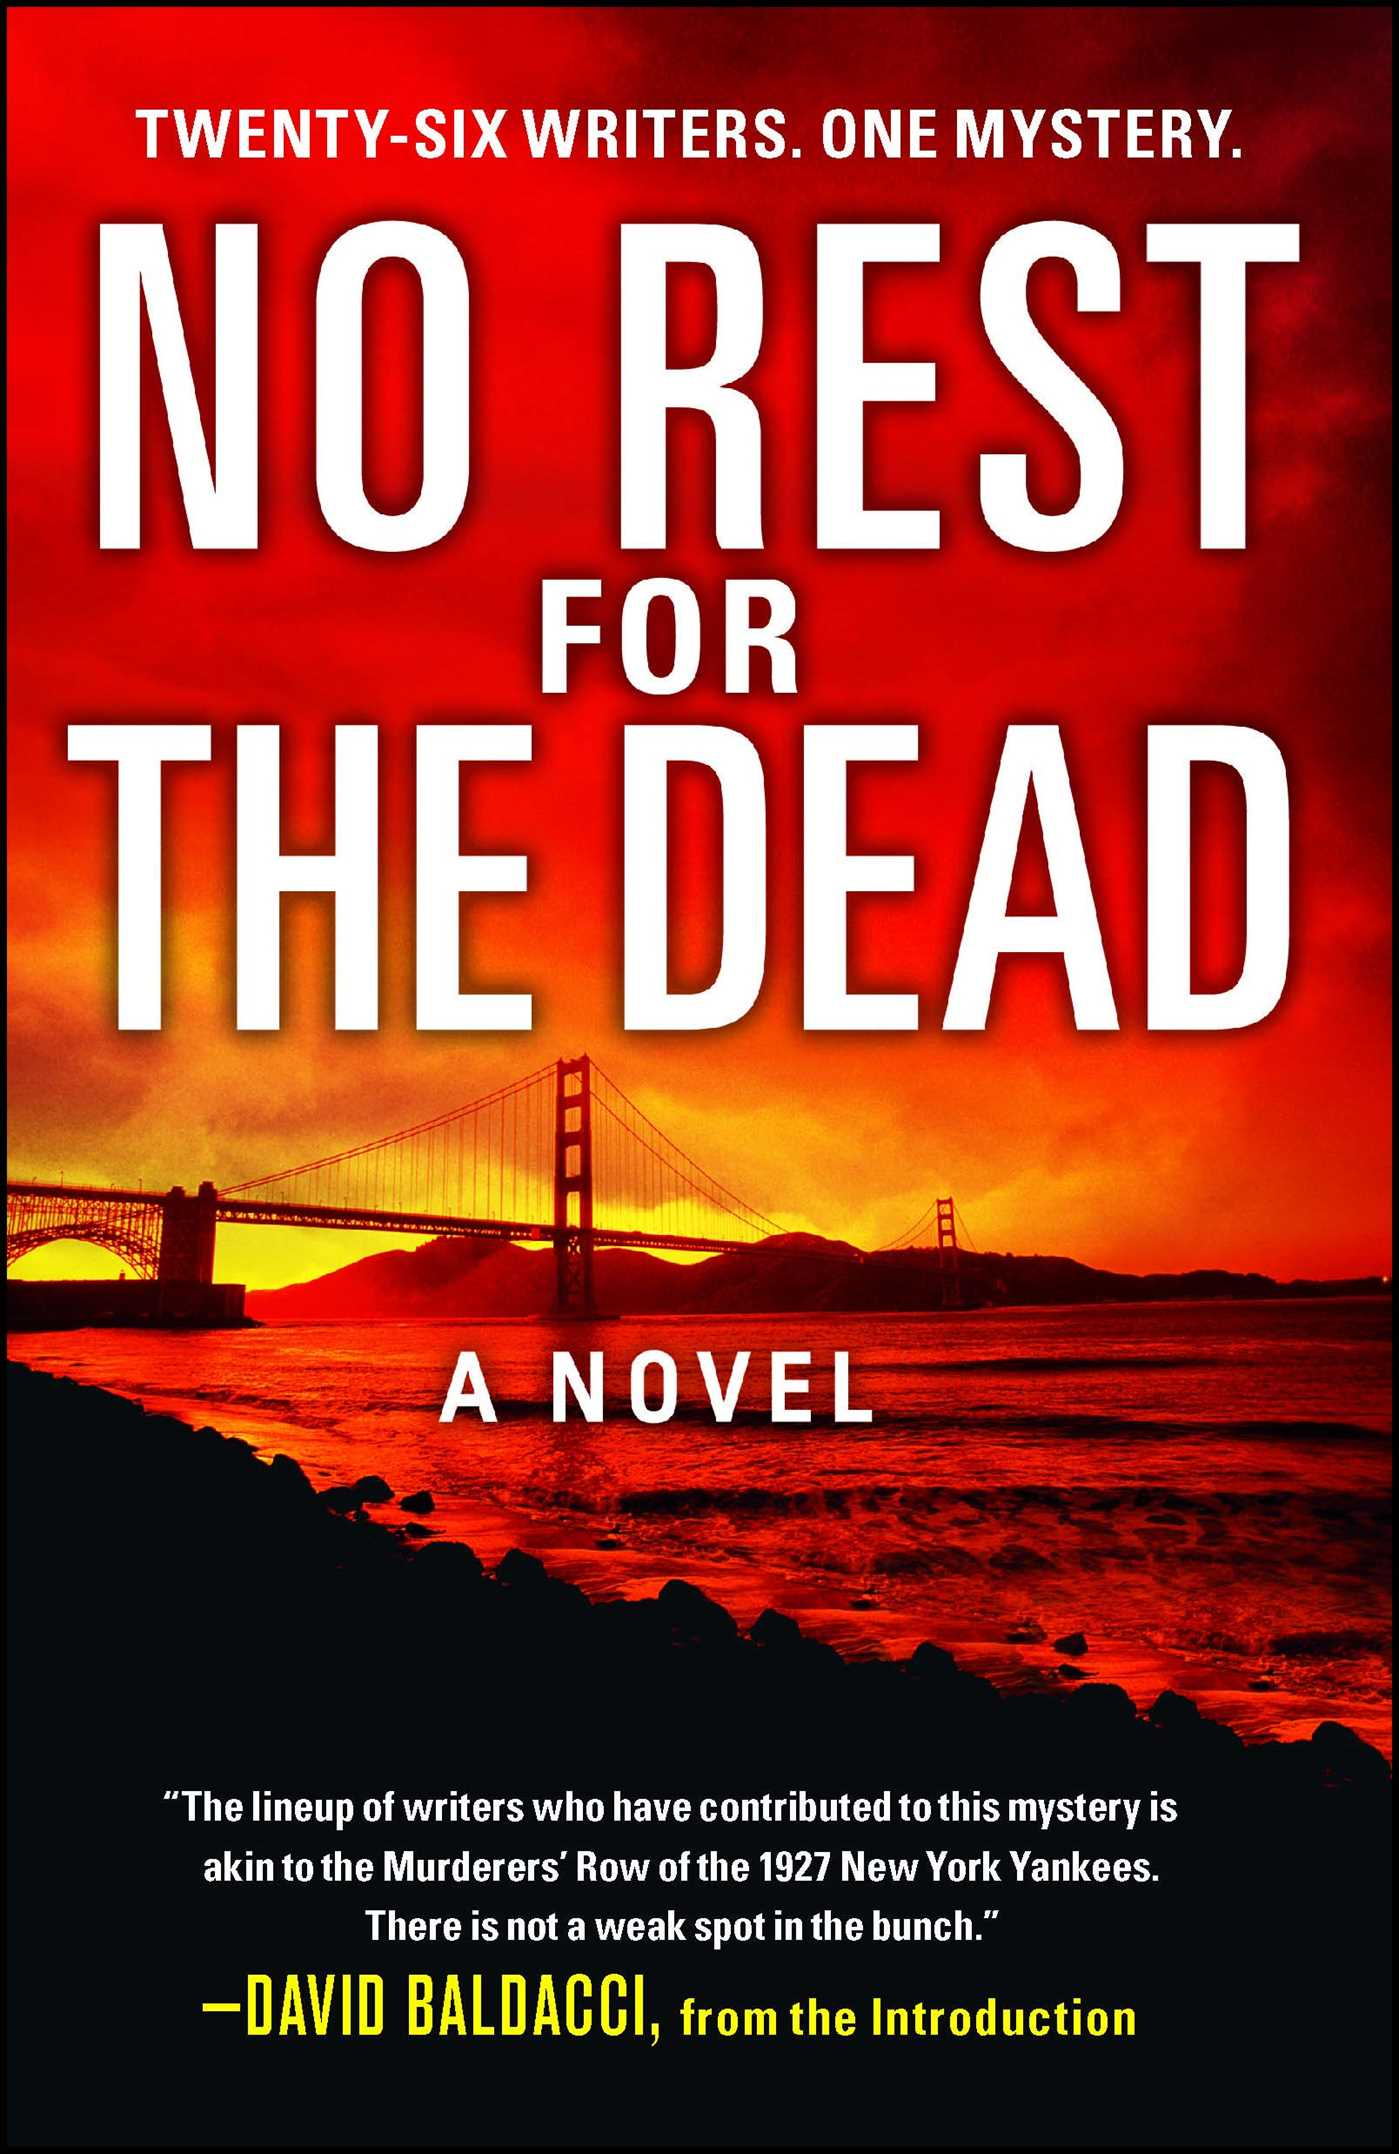 No-rest-for-the-dead-9781451607383_hr